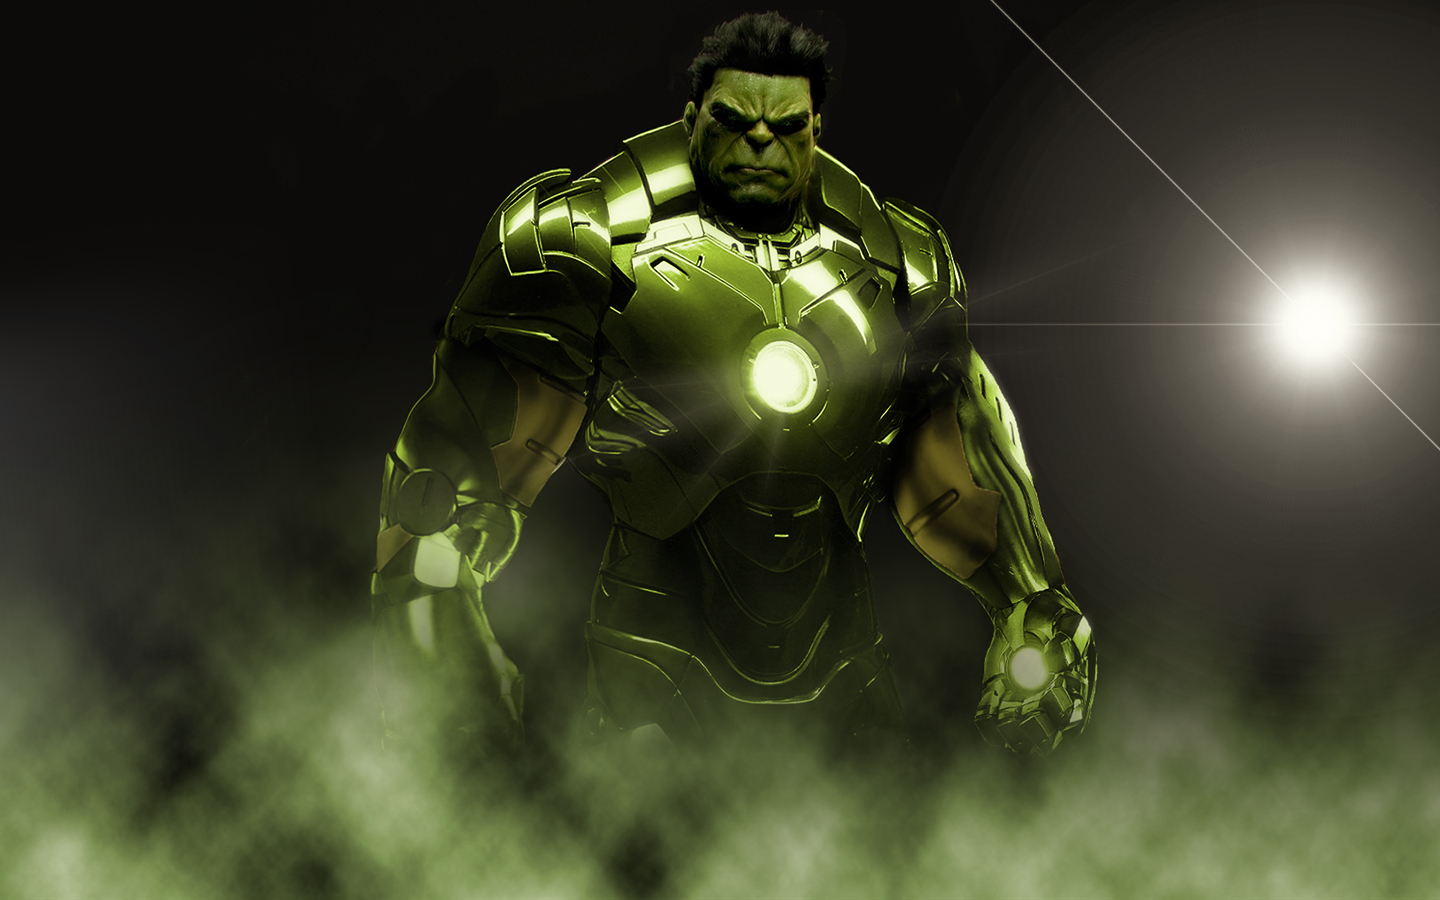 Iron Hulk Wallpaper and Background Image 1440x900 ID347896 1440x900